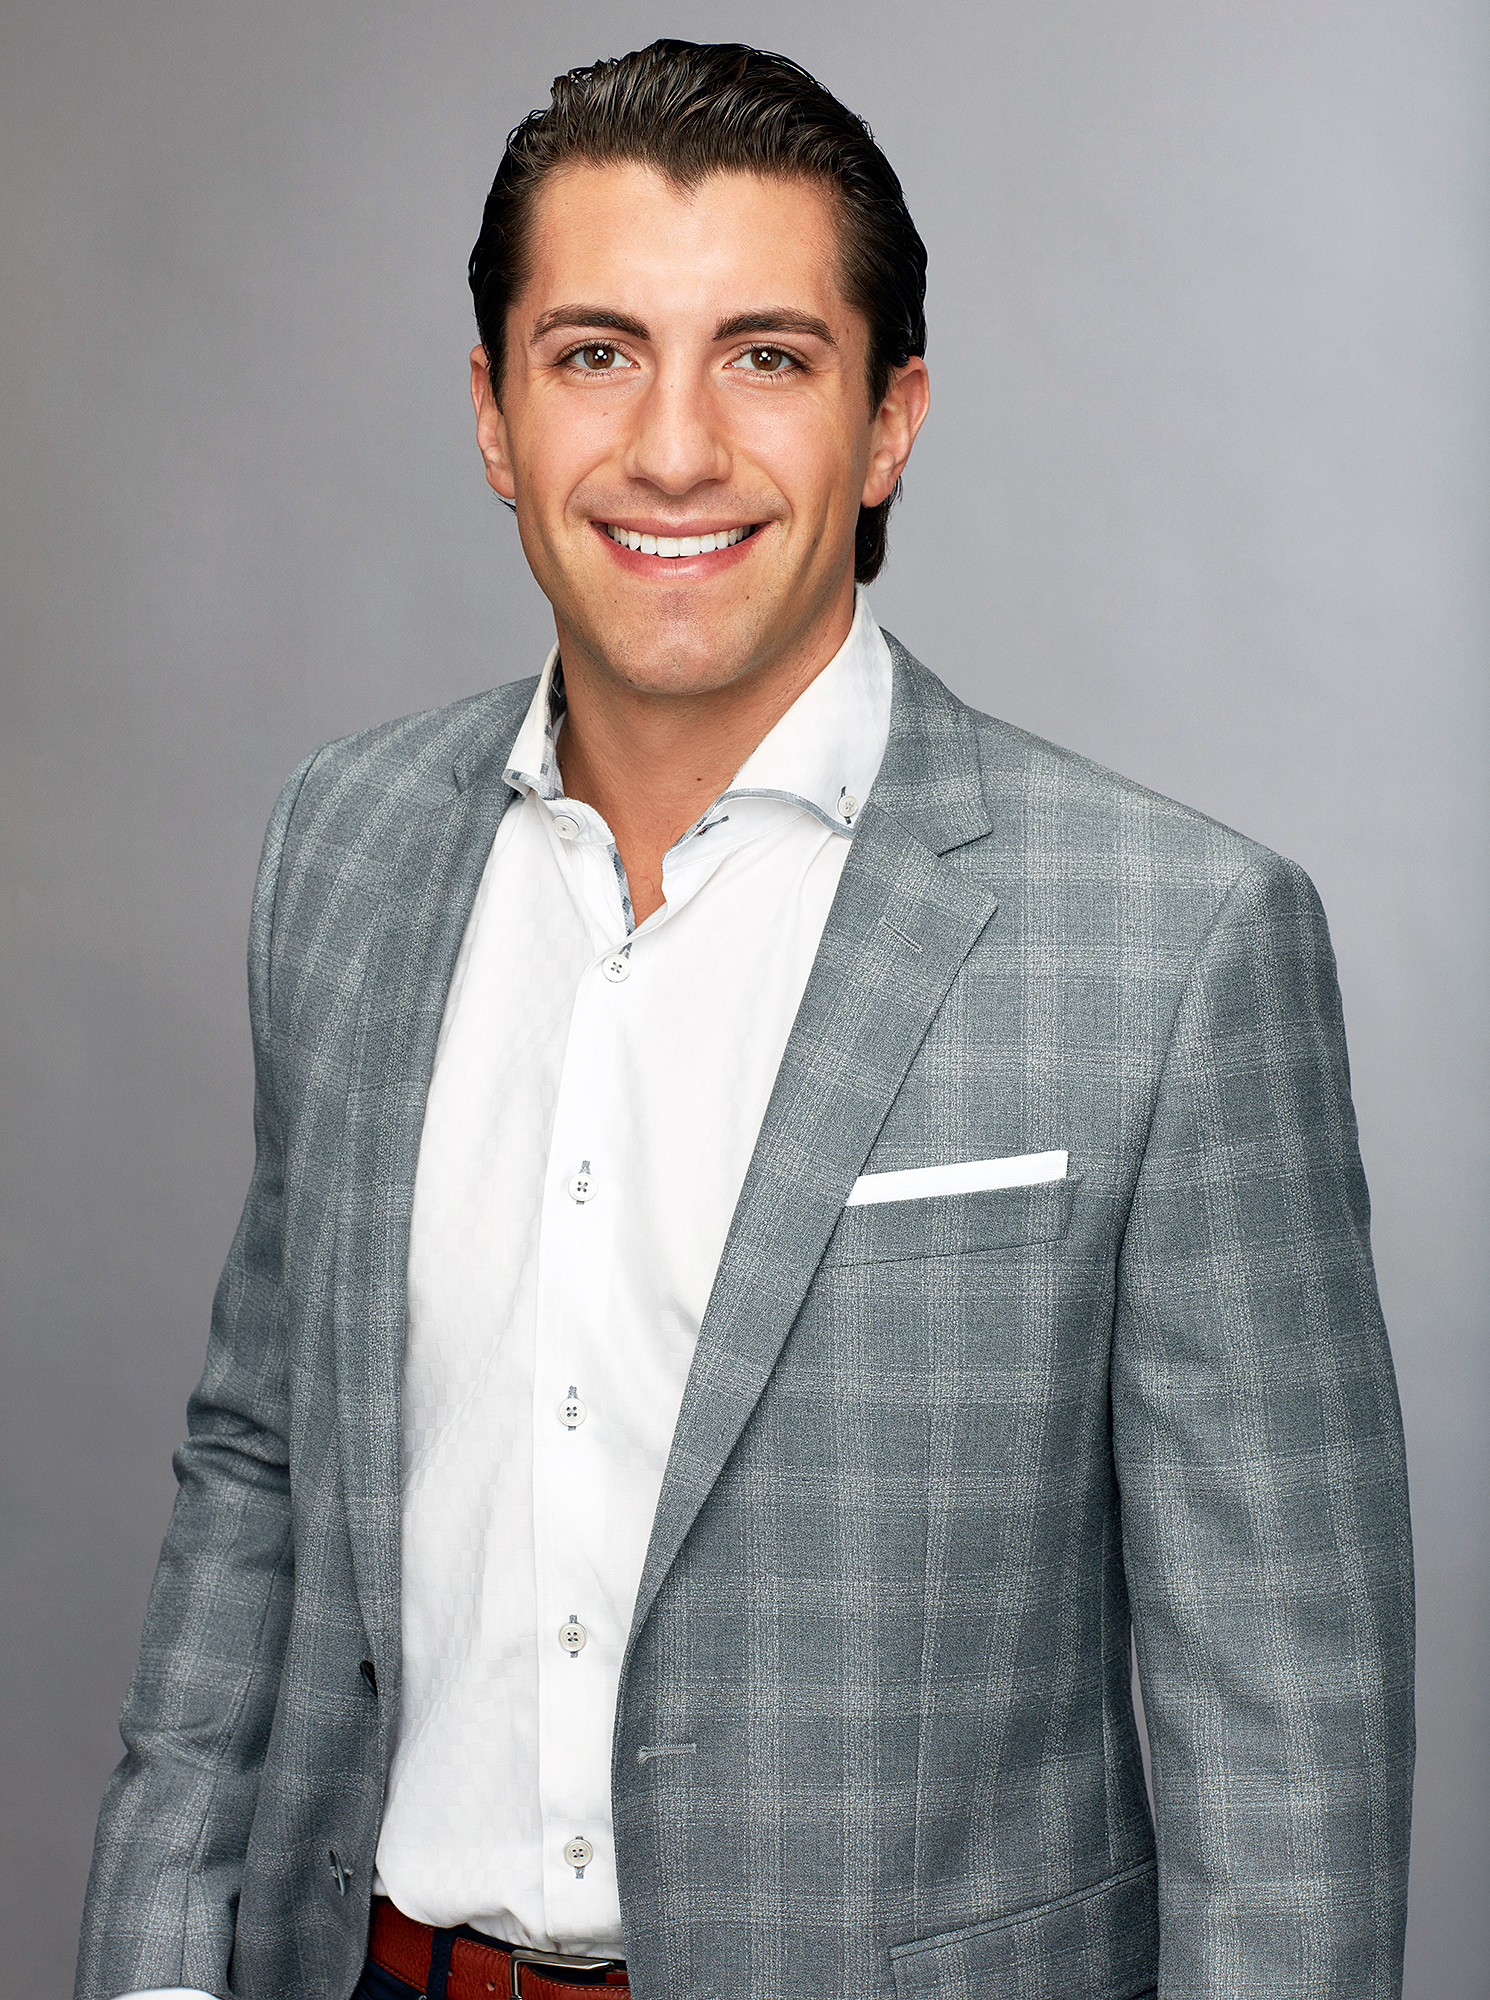 Jason Tartick Says His Bachelor Producer Friends Hear Fans Feedback Loud Clear Amid Controversy